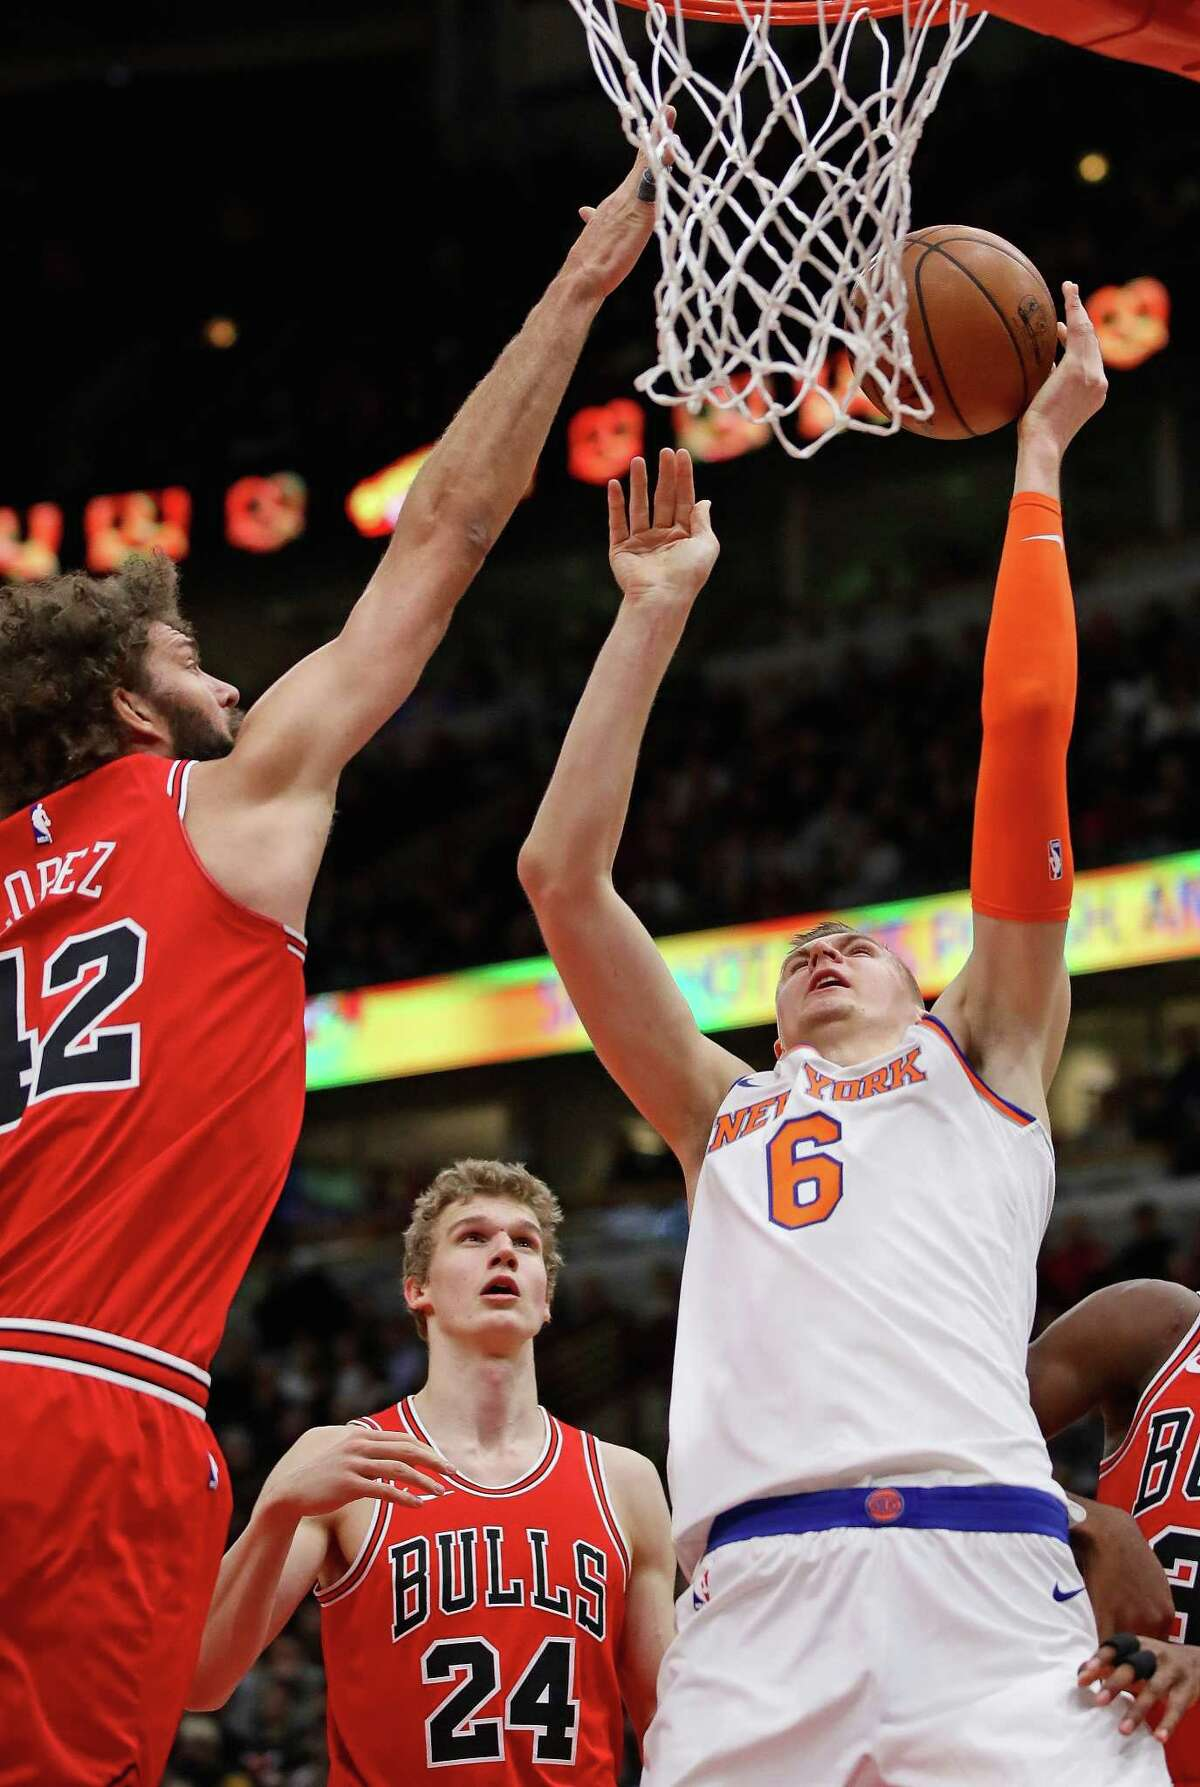 CHICAGO, IL - DECEMBER 27: Kristaps Porzingis #6 of the New York Knicks puts up a shot against Robin Lopez #42 of the Chicago Bulls at the United Center on December 27, 2017 in Chicago, Illinois. NOTE TO USER: User expressly acknowledges and agrees that, by downloading and or using this photograph, User is consenting to the terms and conditions of the Getty Images License Agreement. (Photo by Jonathan Daniel/Getty Images)